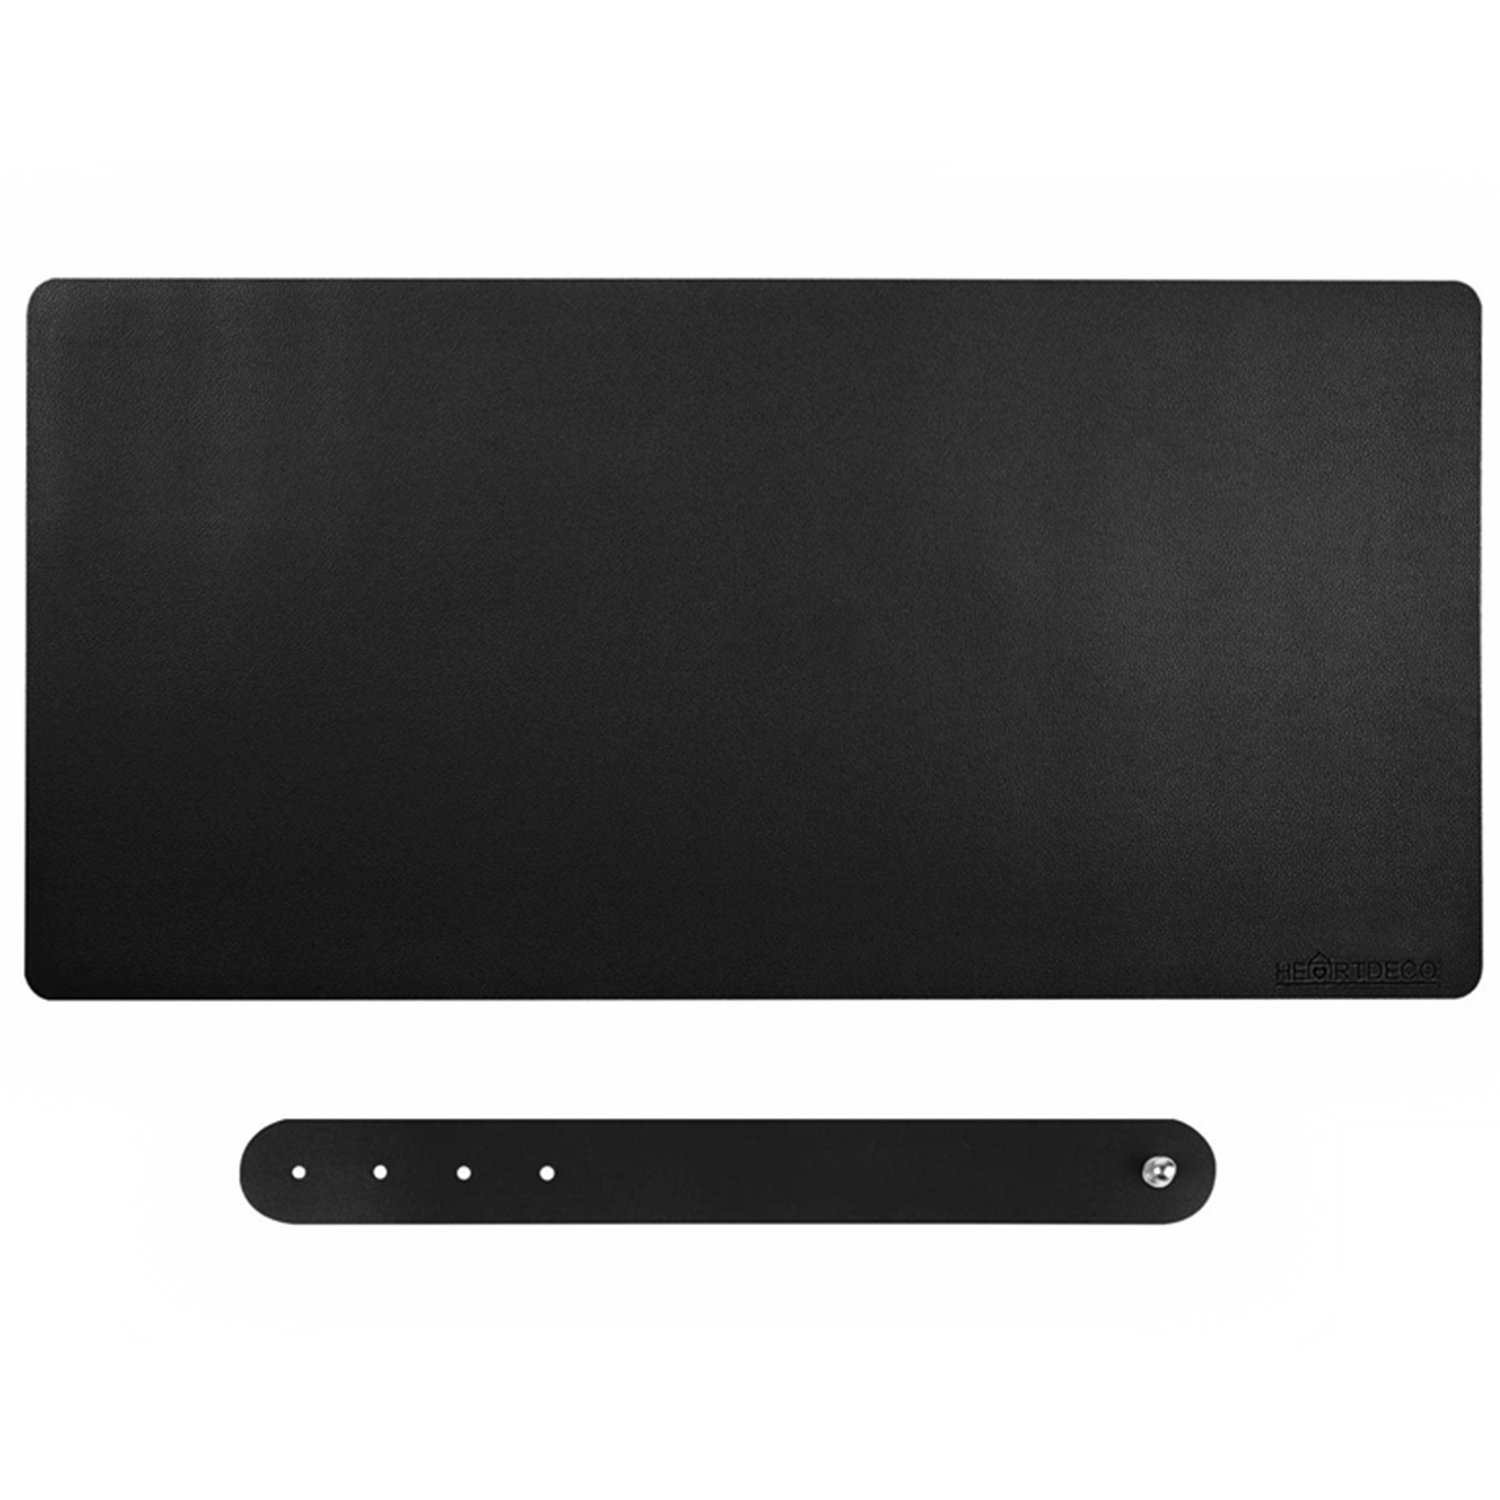 Large PU Leather Desk Mouse Pad Comfortable Writing Mat